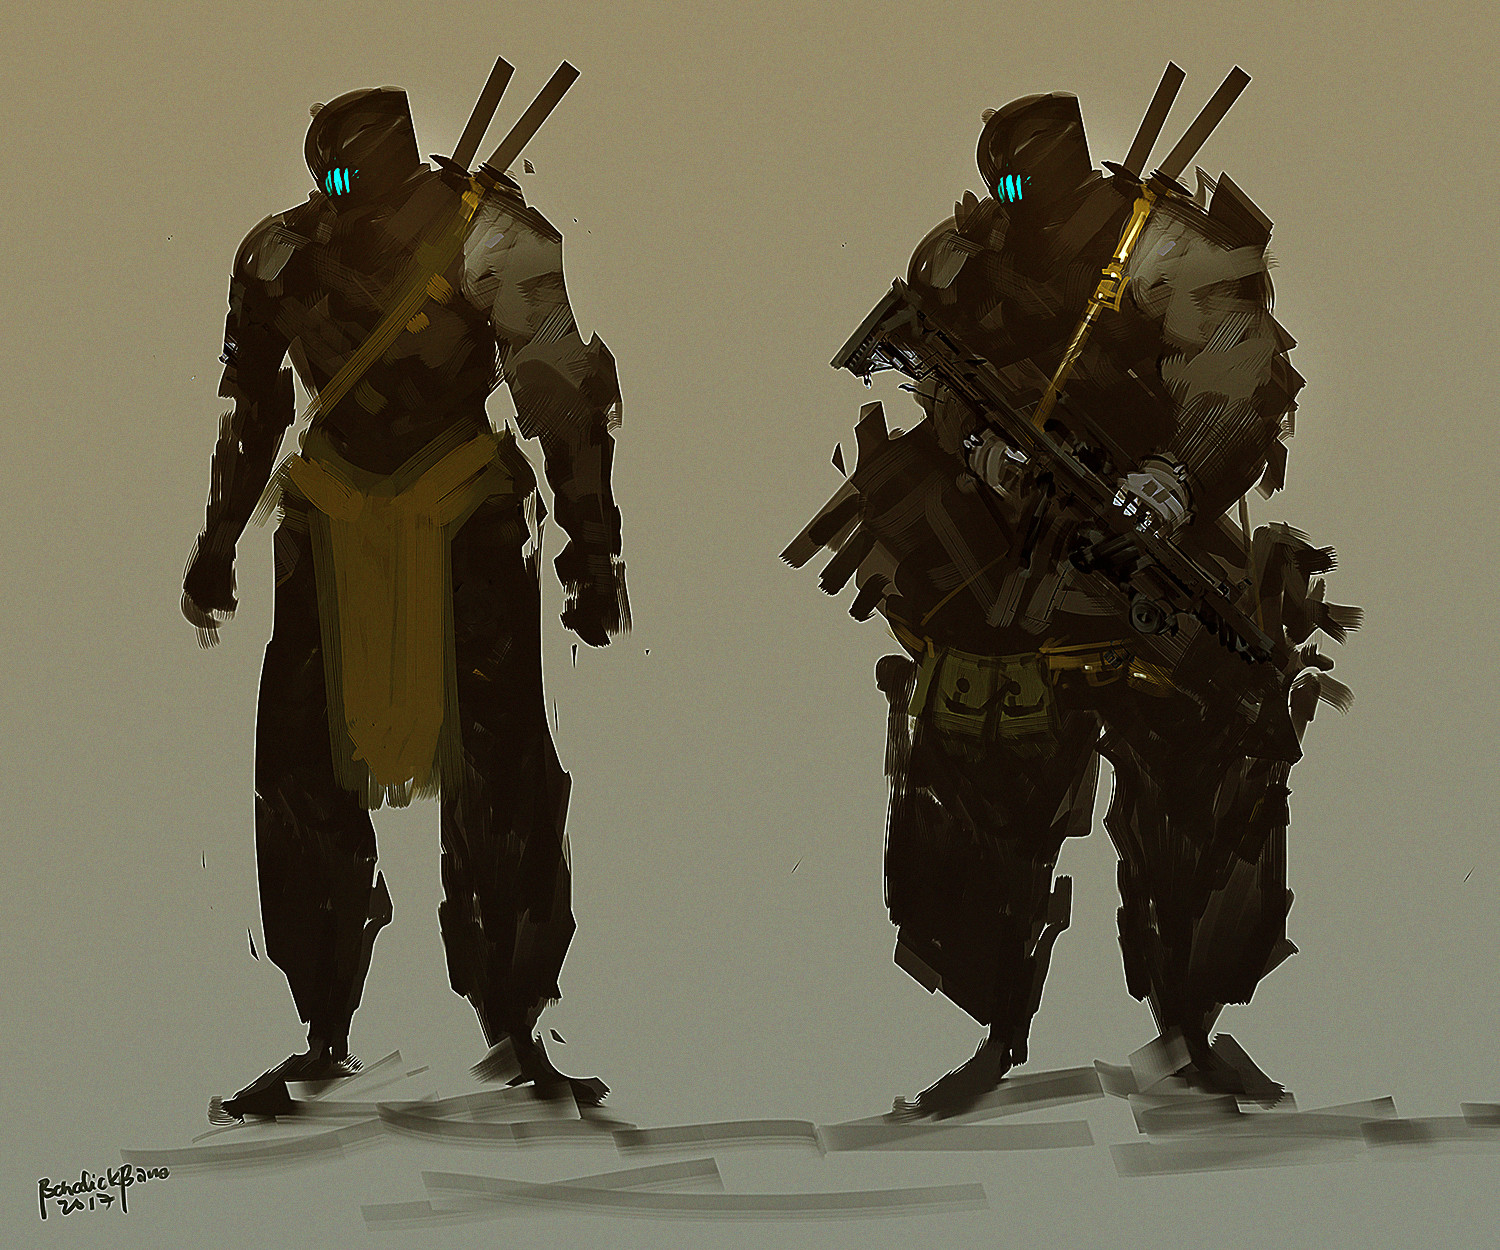 Benedick bana bounty hunter design lores2